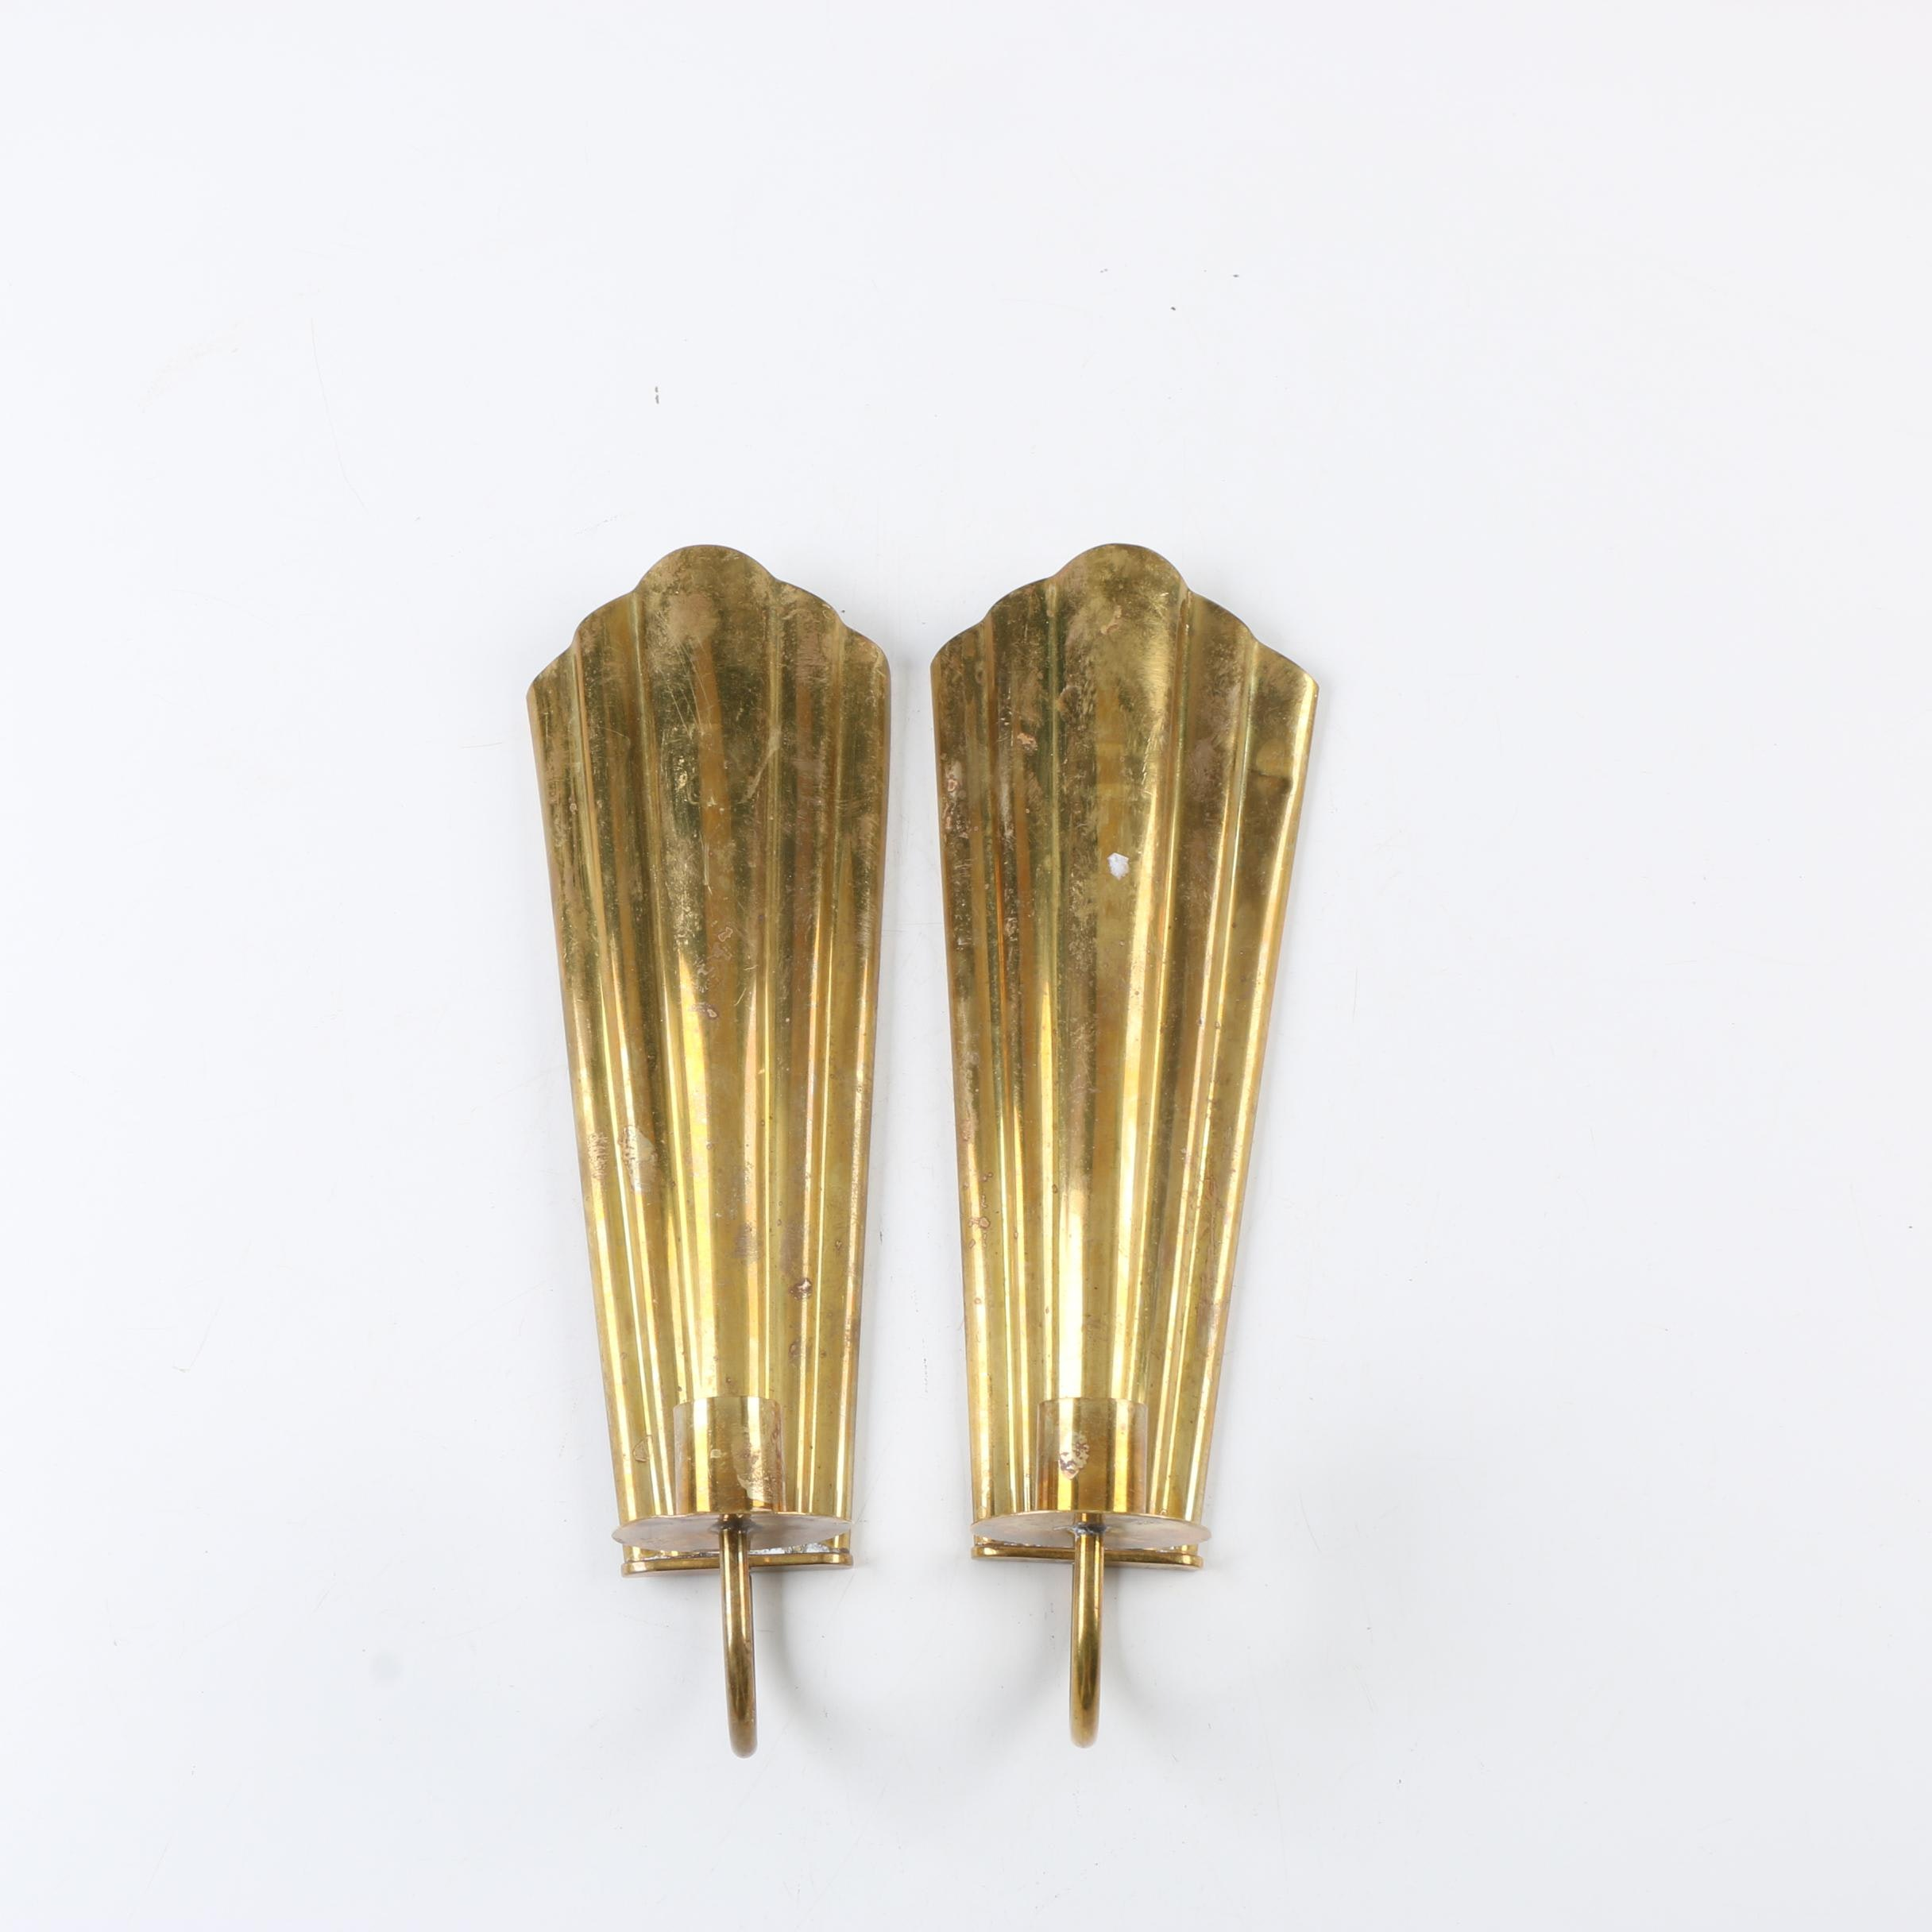 Art Deco Style Brass Candle Holder Sconces